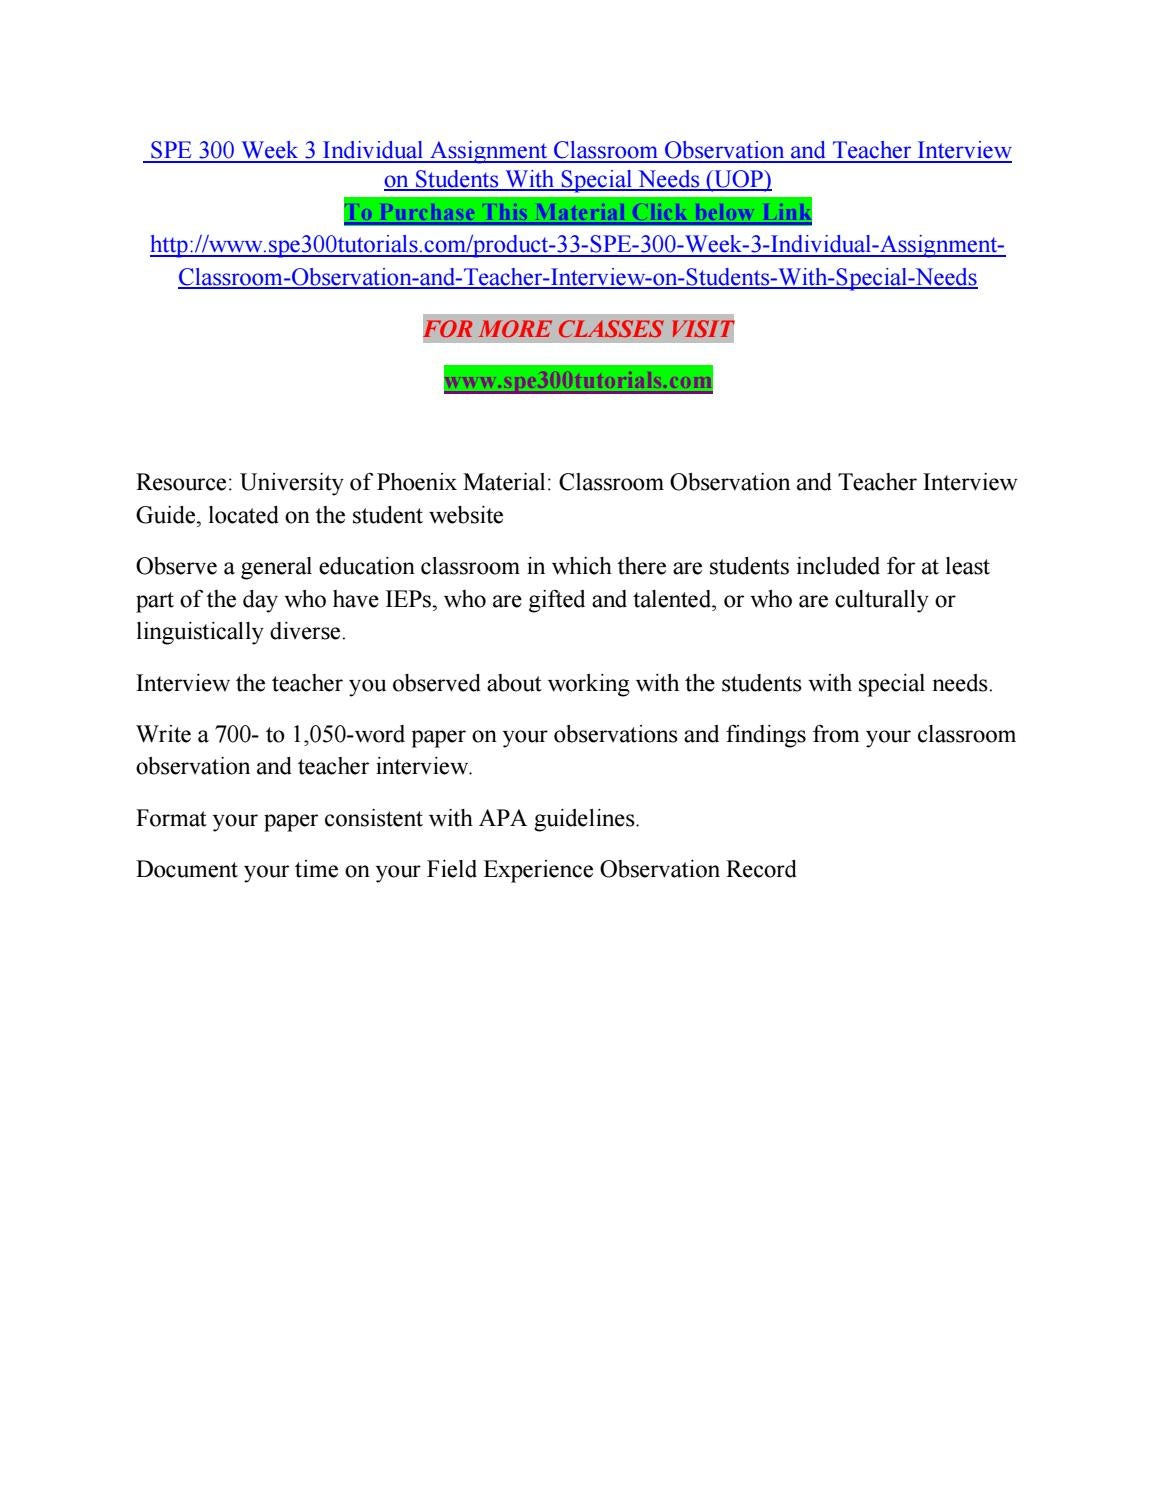 Spe 300 week 3 individual assignment classroom observation